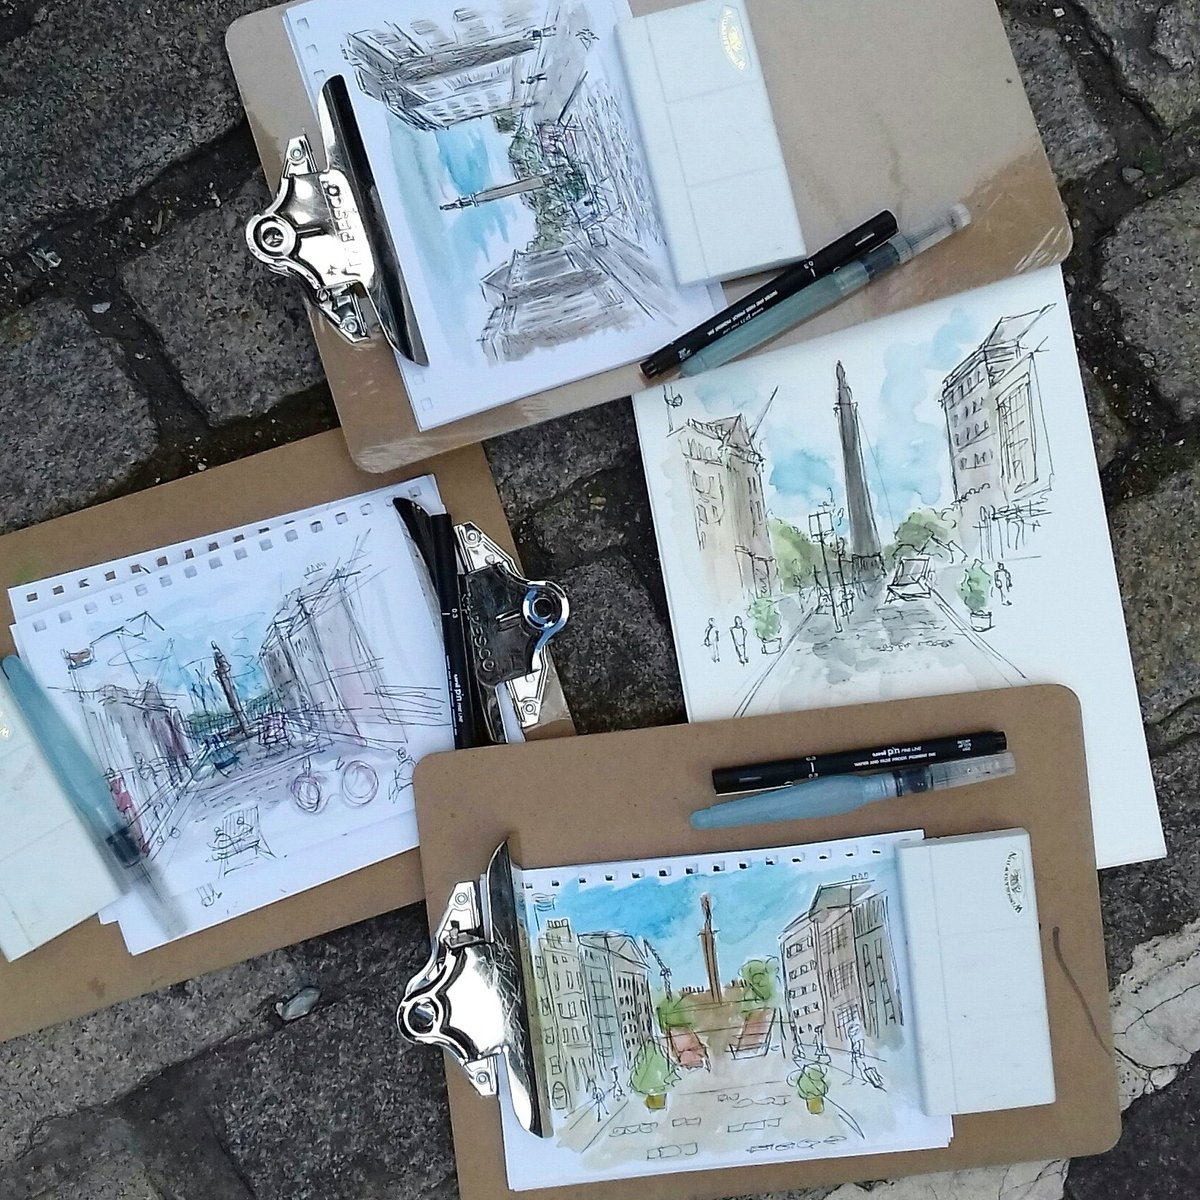 Great drawings from todays sketching on a traffic free George Street. Thanks to all who came and had a go on #cleanairday  I hope to see you all again soon. #myedinburgh #edinsummit #carfreeday #edinburghlife #instaart #urbansketchers #thisisedinburgh @Edinburgh_CC<br>http://pic.twitter.com/1l76BFp7wr